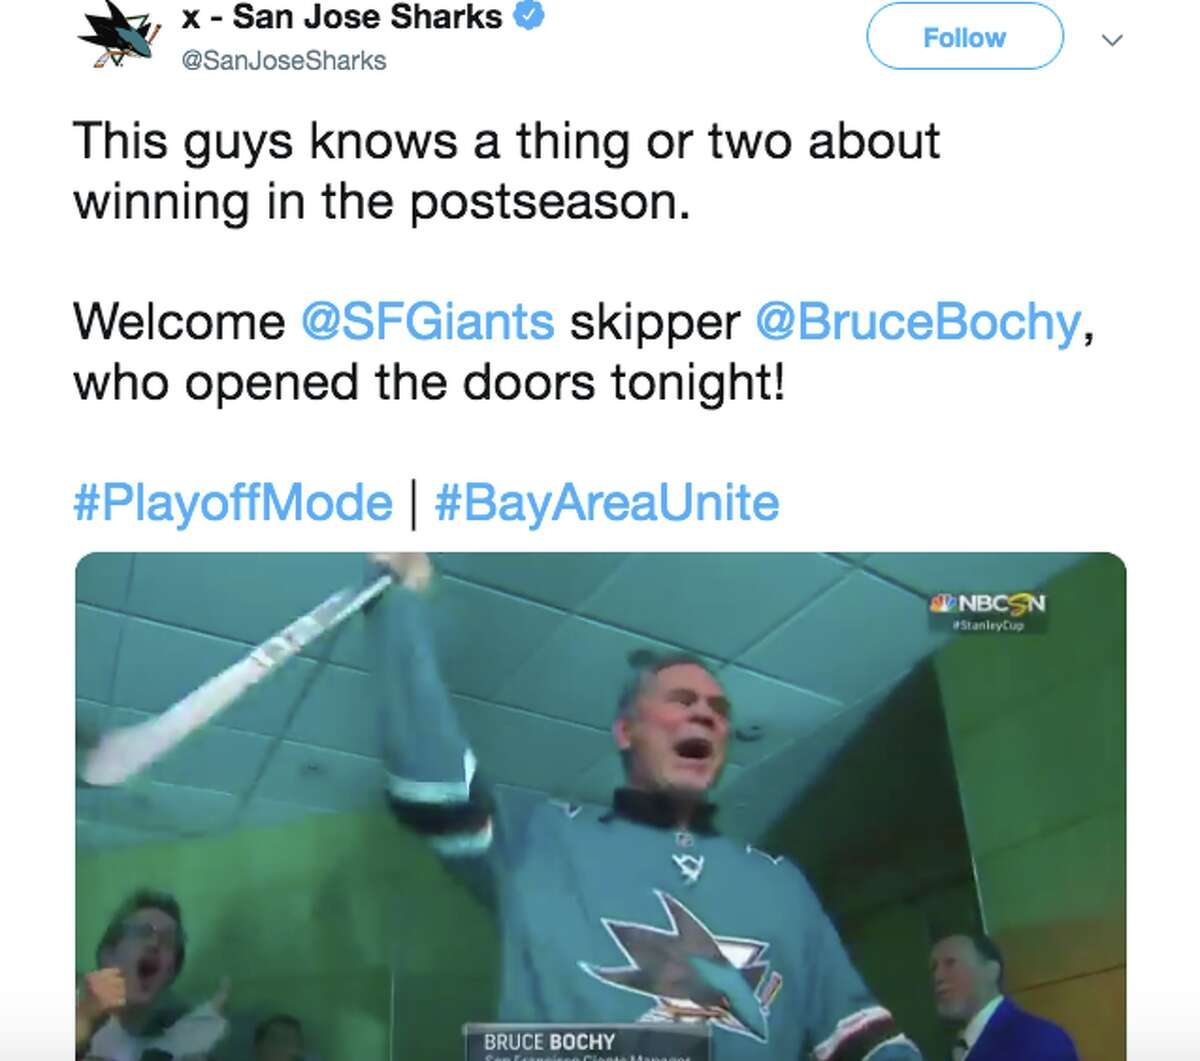 Bruce Bochy opened the doors for the Sharks prior to Game 2 of the Western Conference Finals.